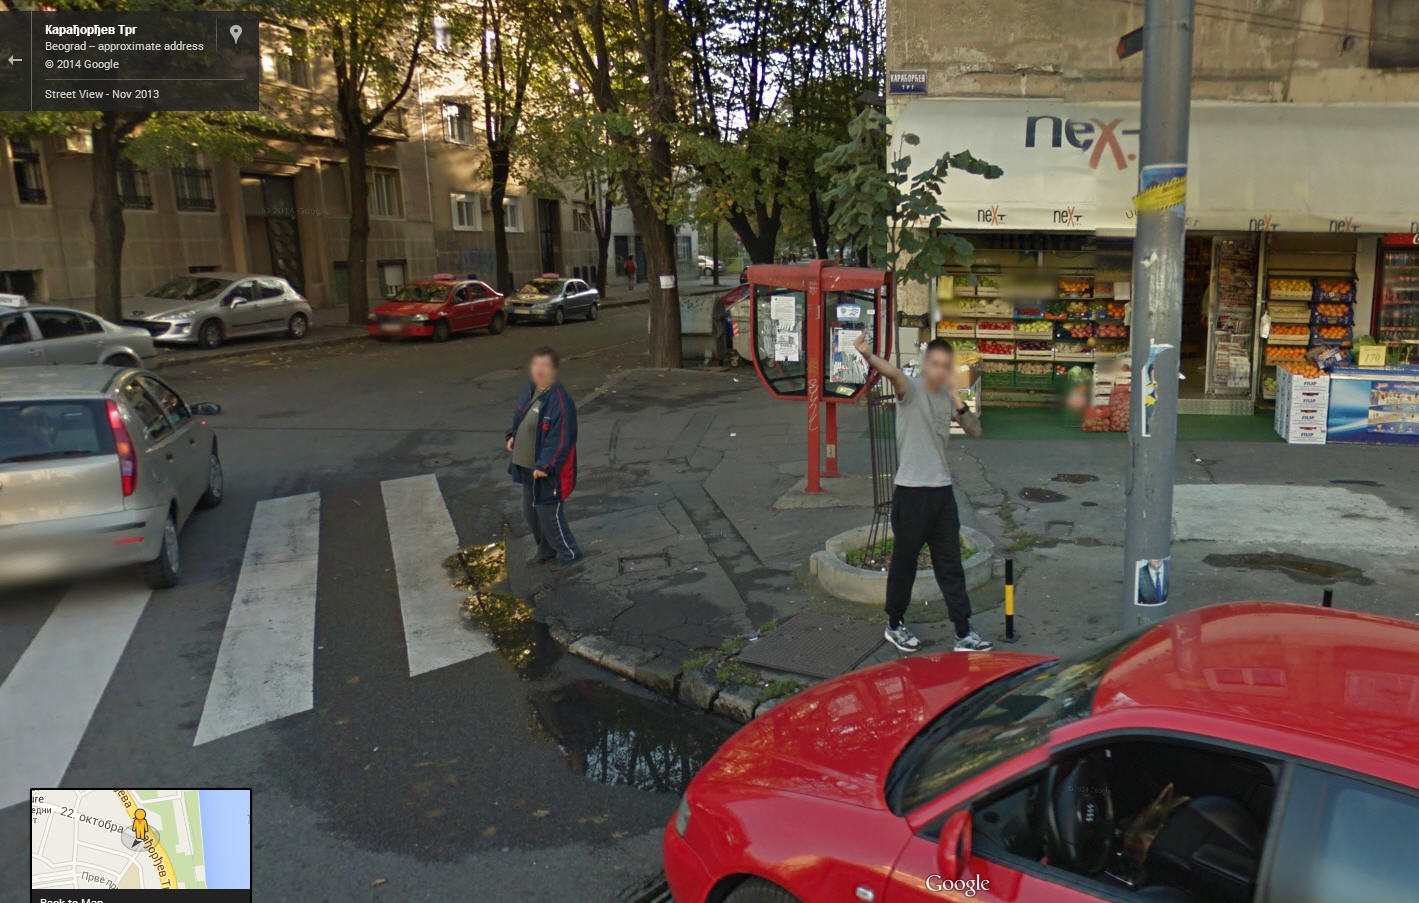 First Unhappy Google Street View Customer from Serbia